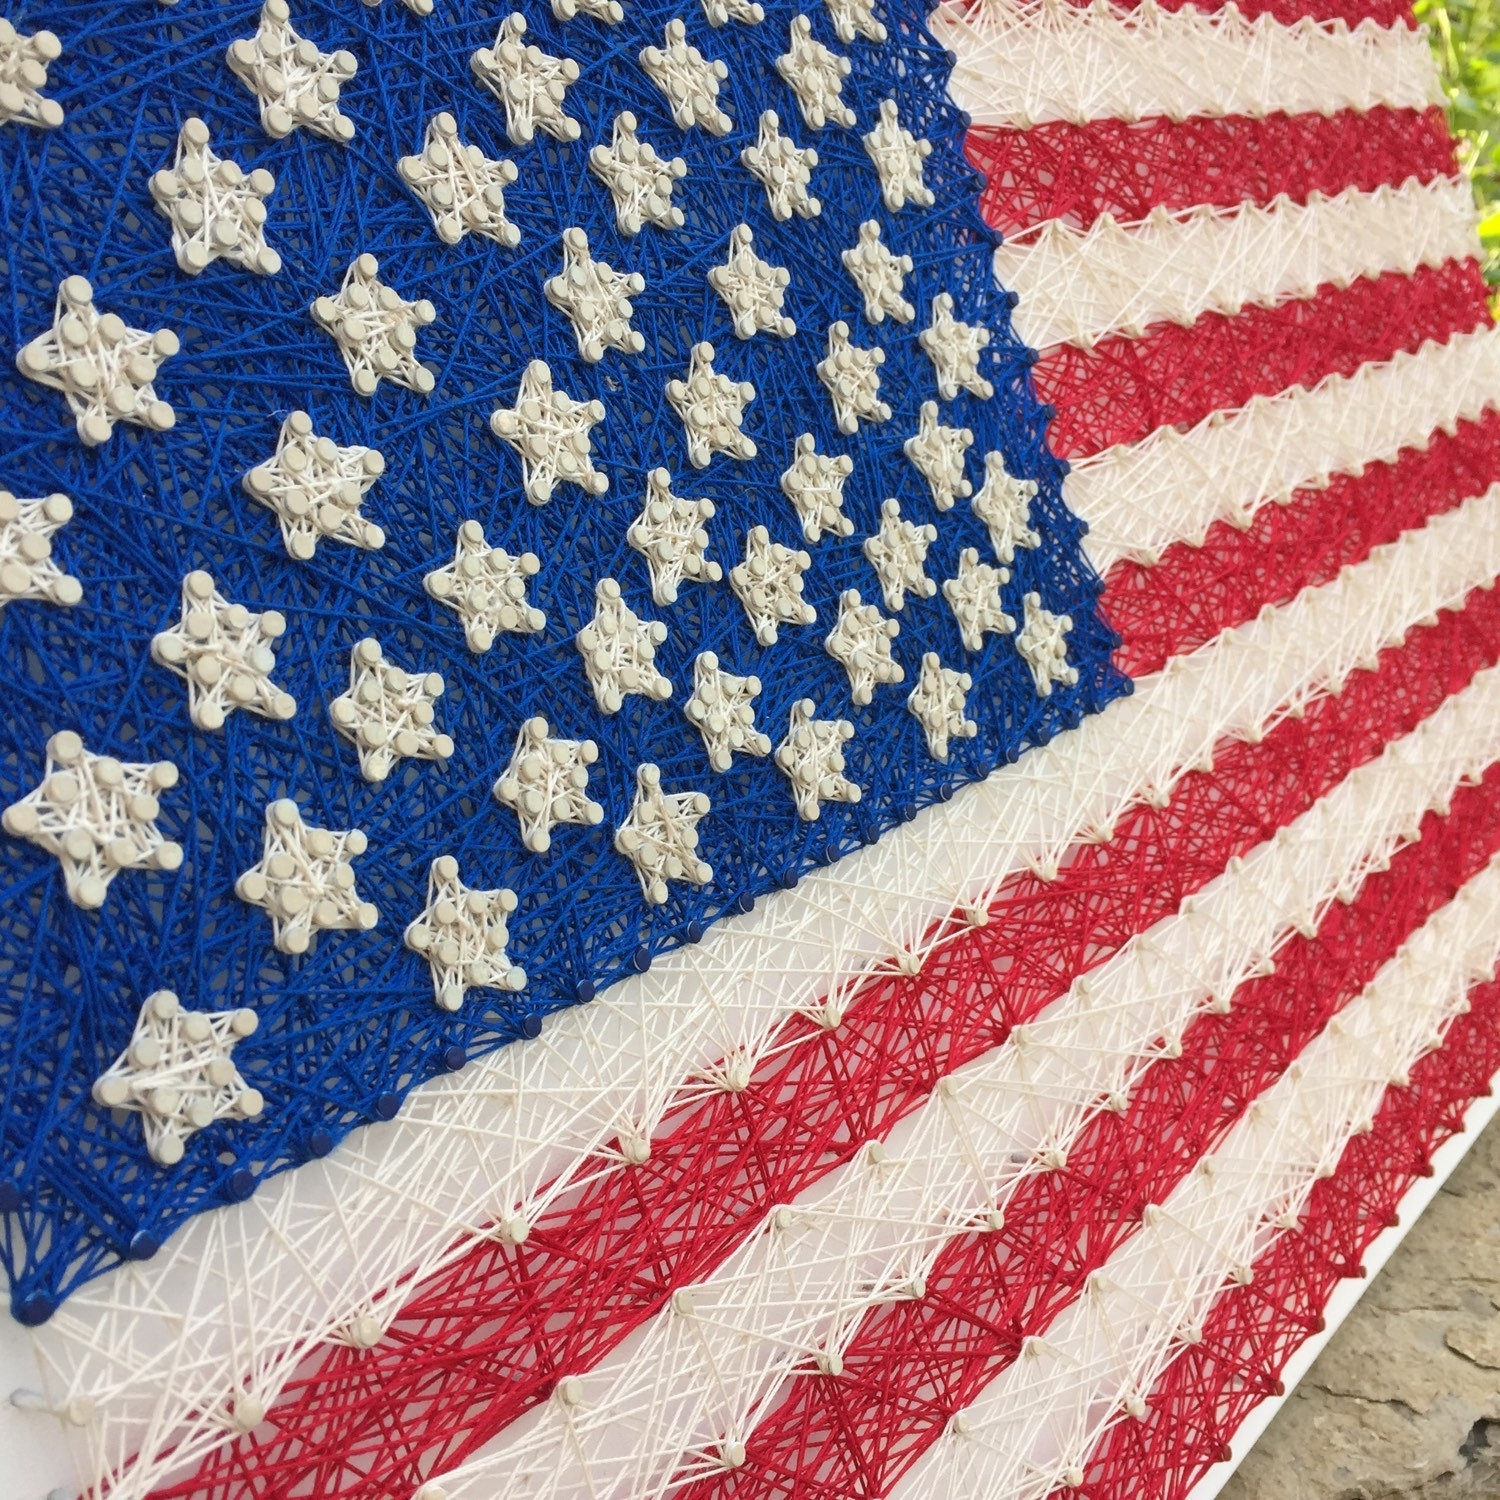 American Flag Wall Decor – Aol Image Search Results With Regard To Most Up To Date American Flag Fabric Wall Art (View 6 of 15)